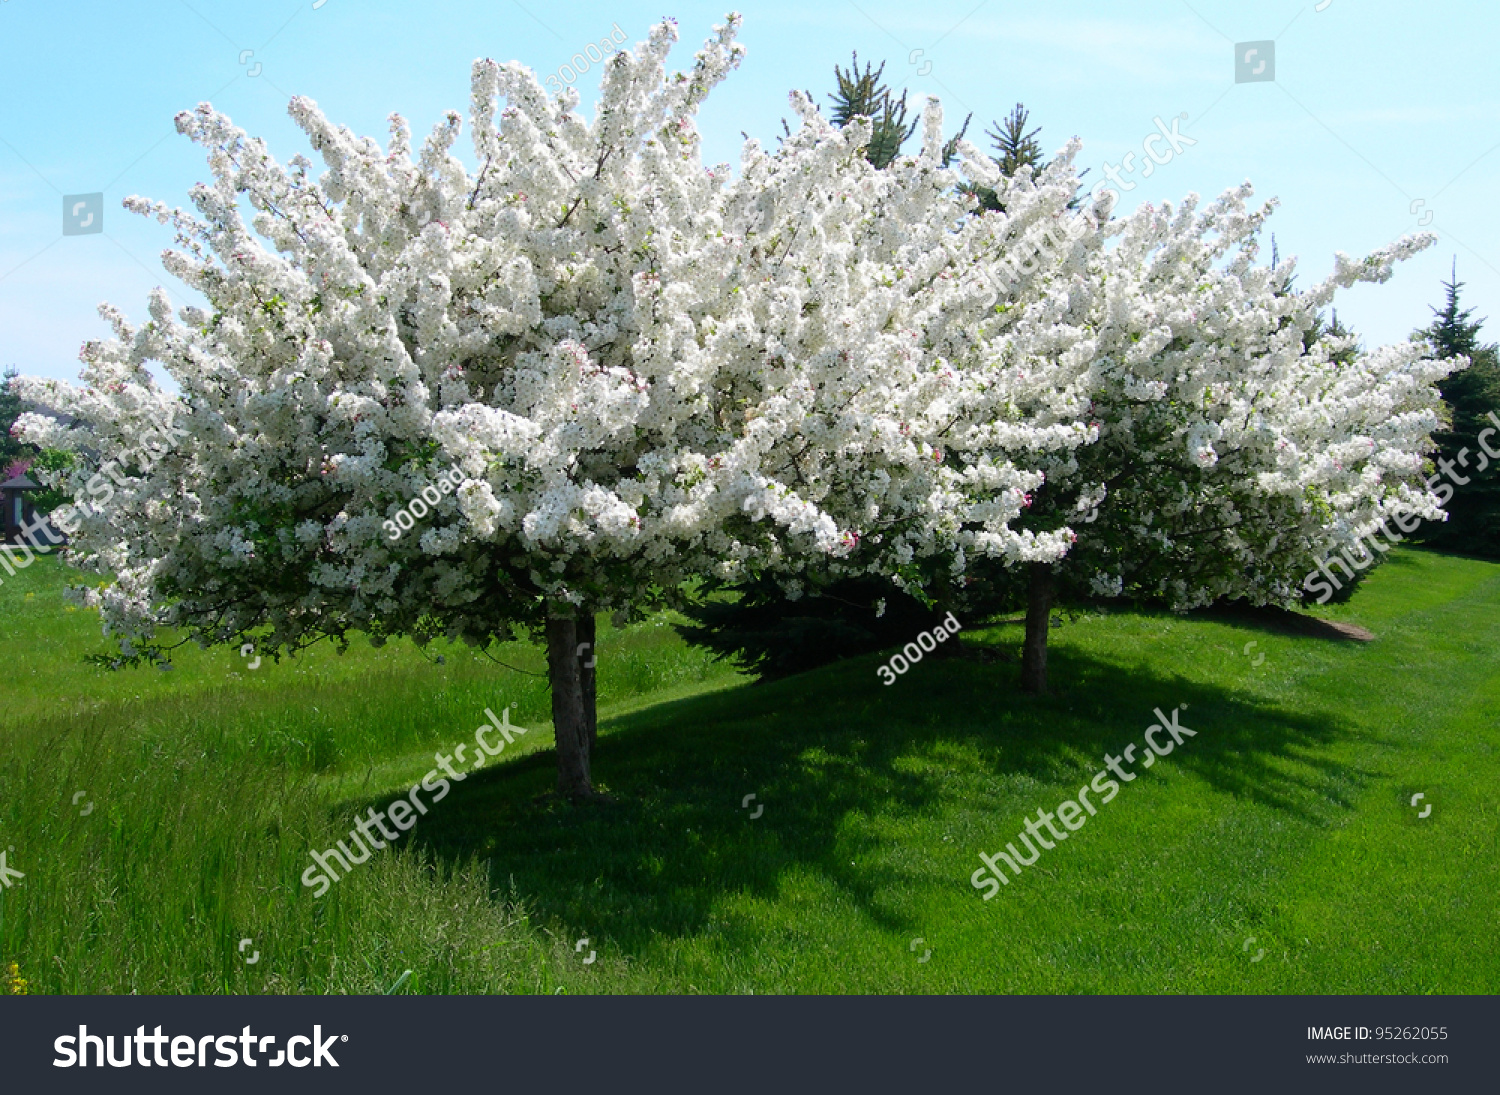 Spring Trees Stock Images - Dreamstime